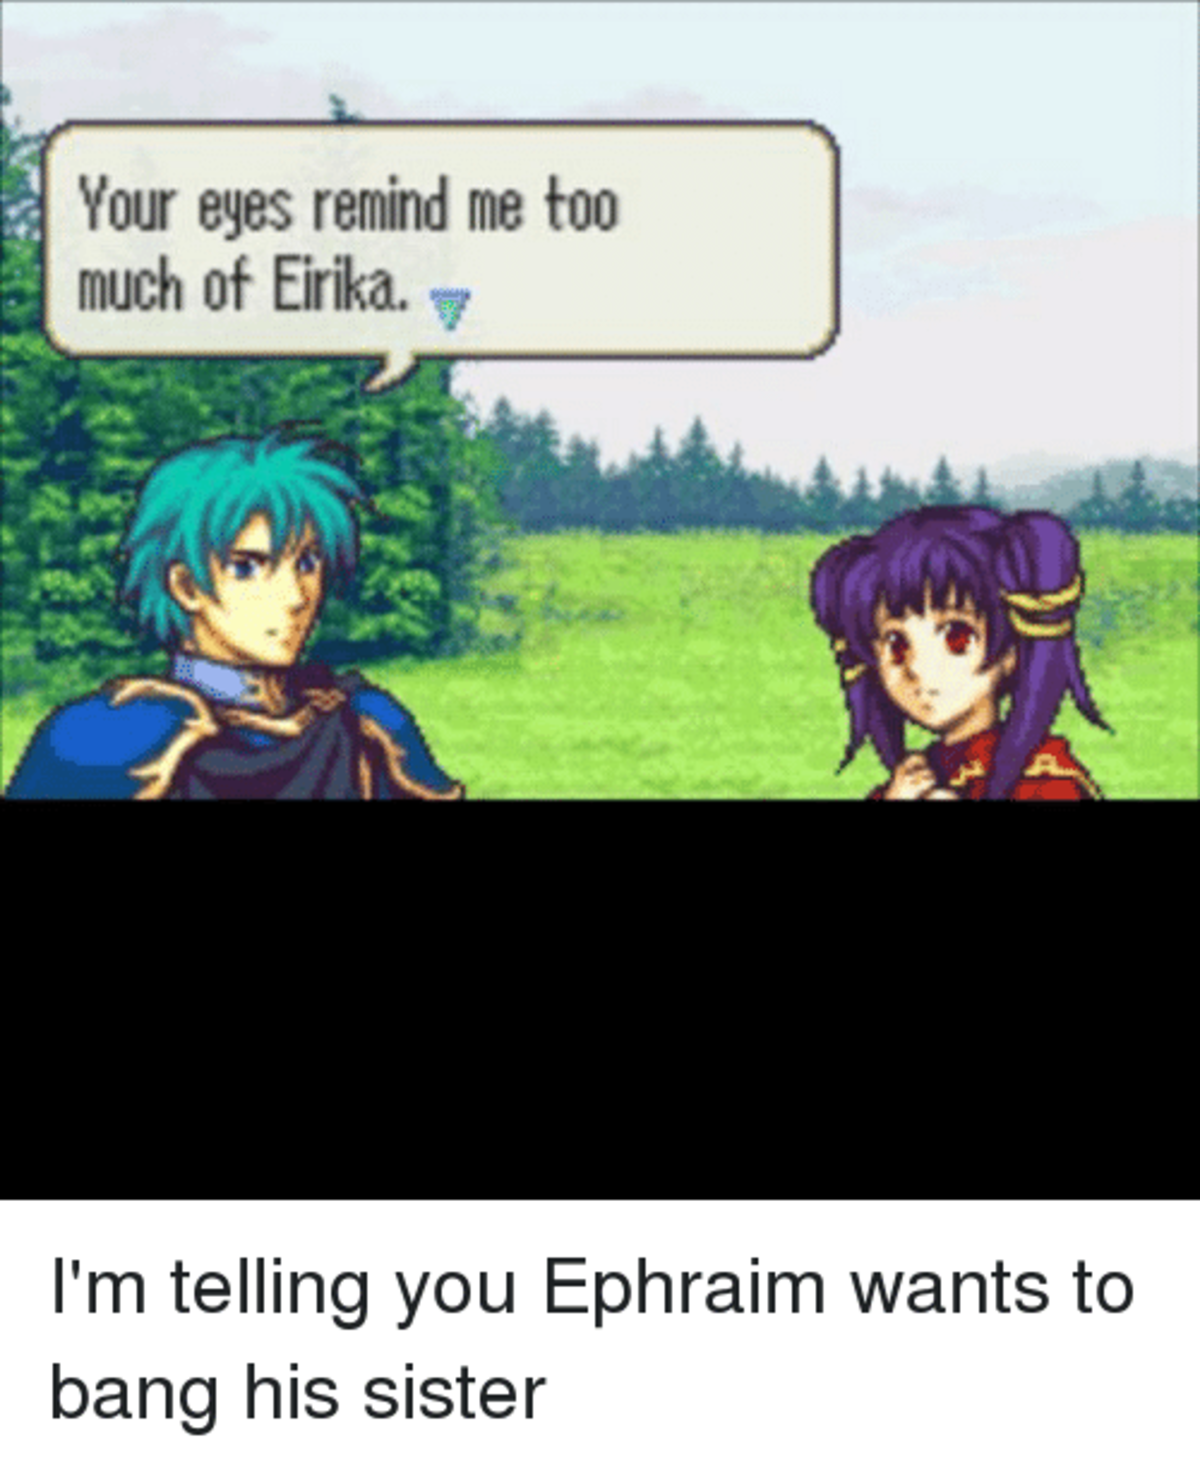 Ephraim Master of Romance. .. I always like to remember that the disgusting comment in FEH came from him bragging about how close others see him and his sister.